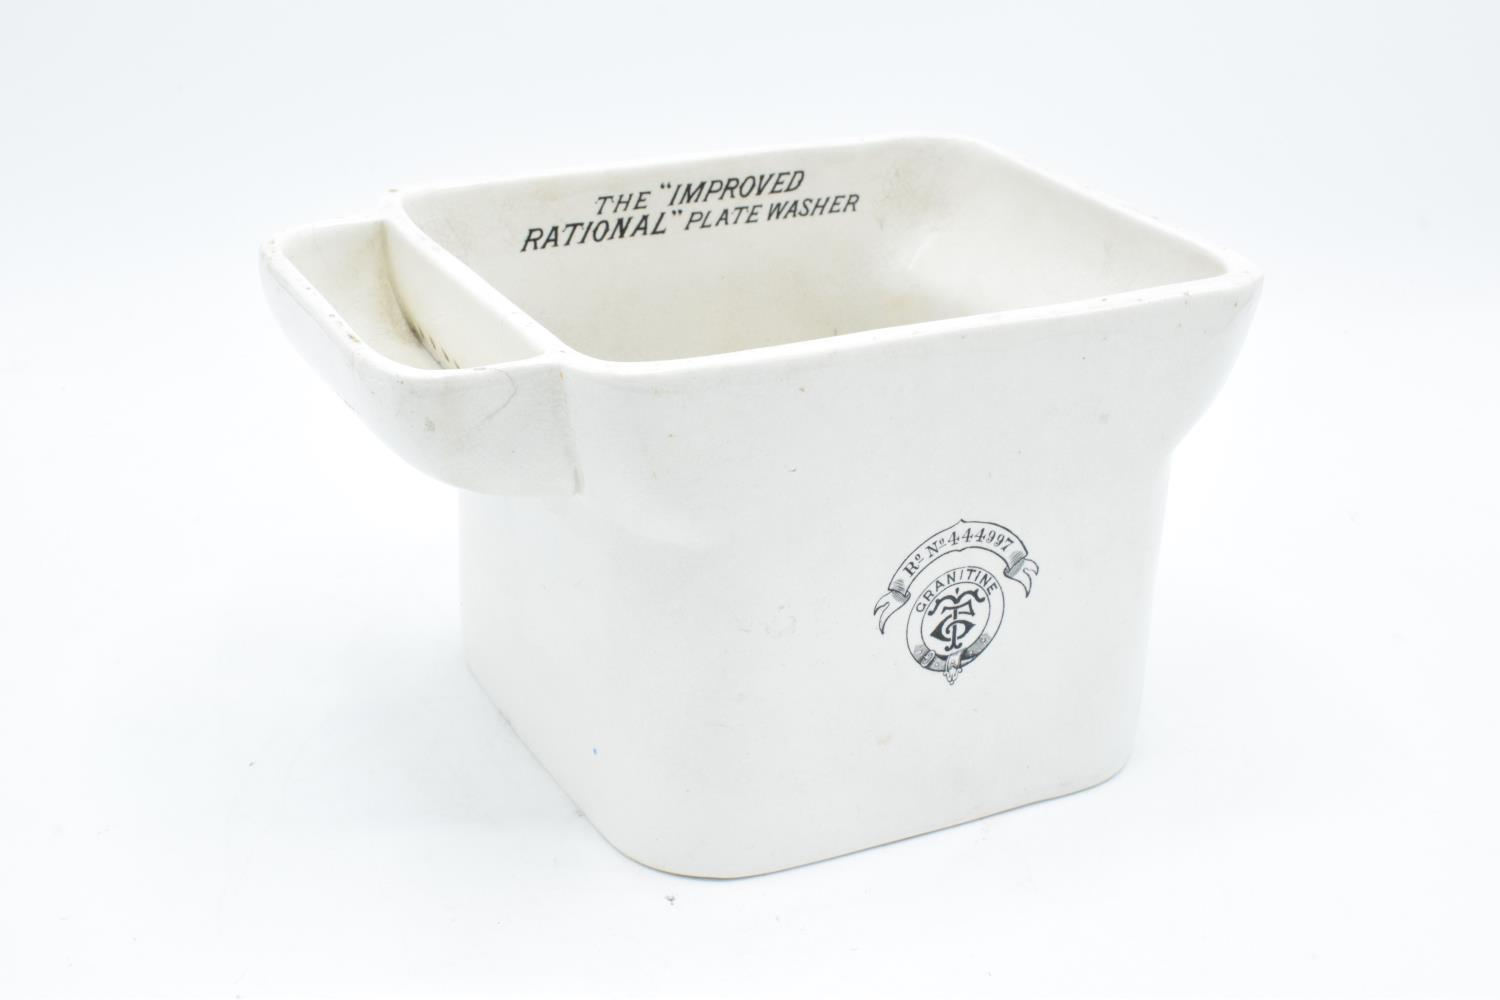 Late 19th century ironstone Granitime Improved Rational Plate Washer for photographers. With some